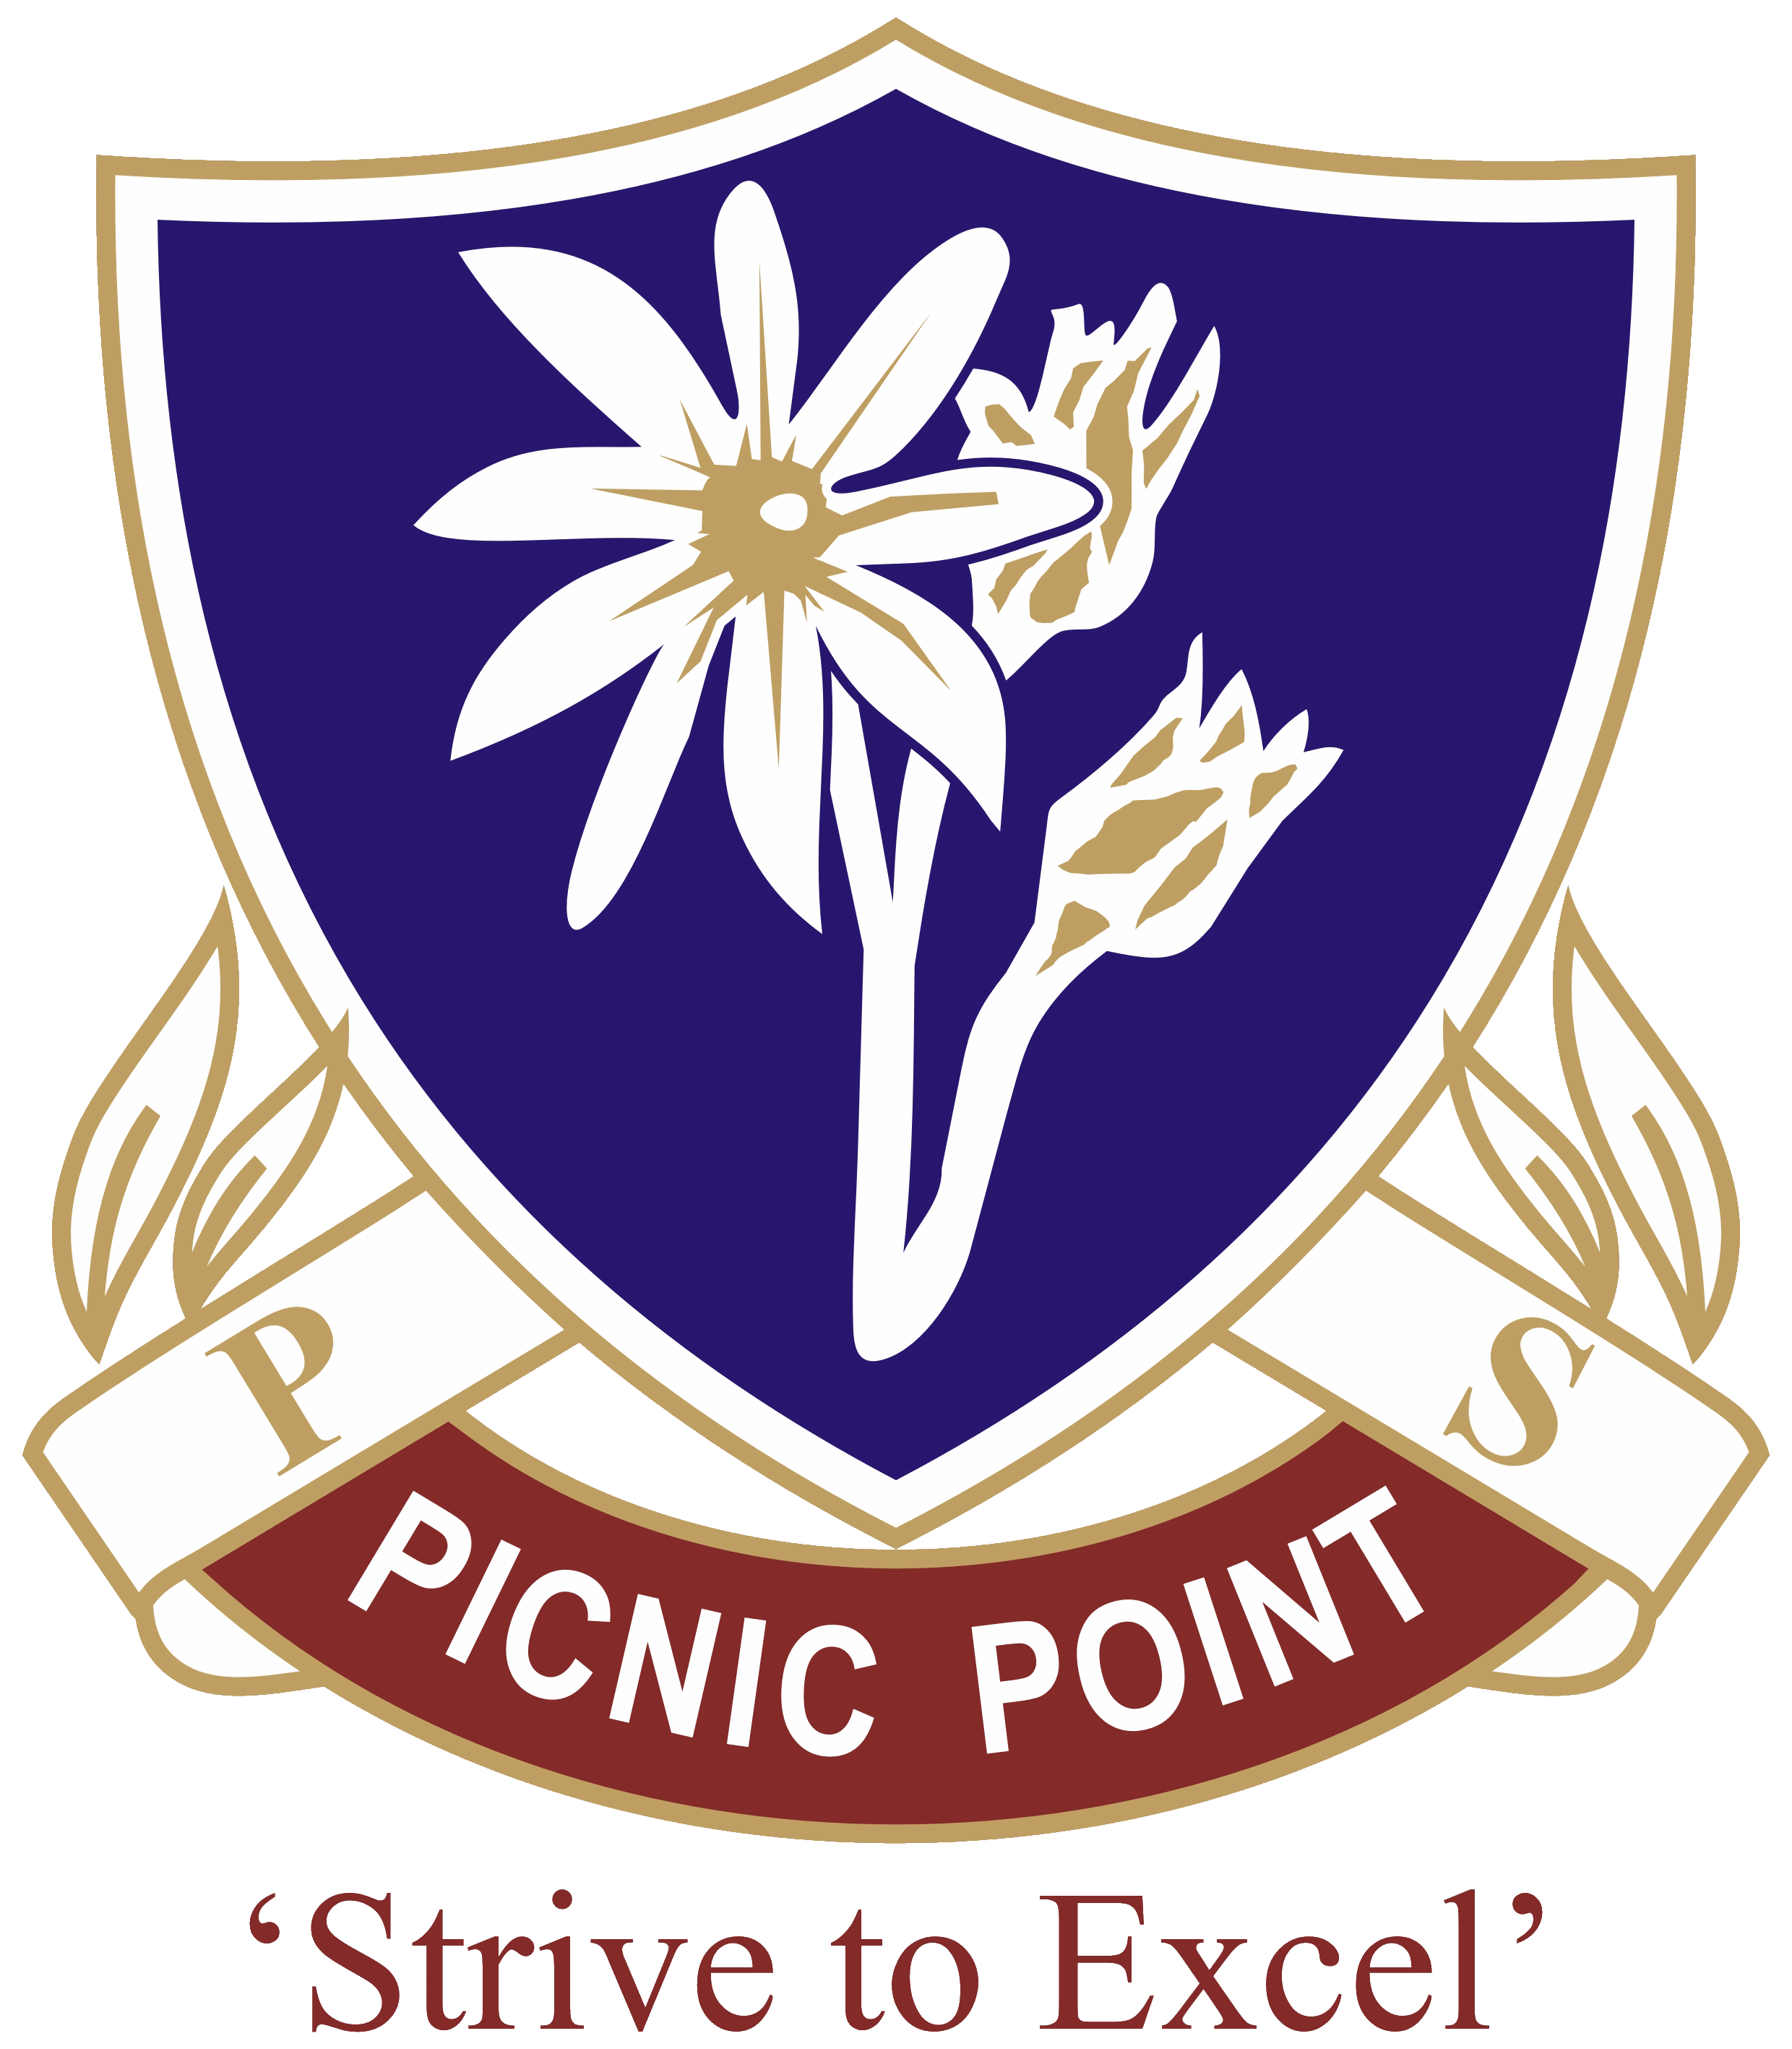 Picnic Point Public School logo